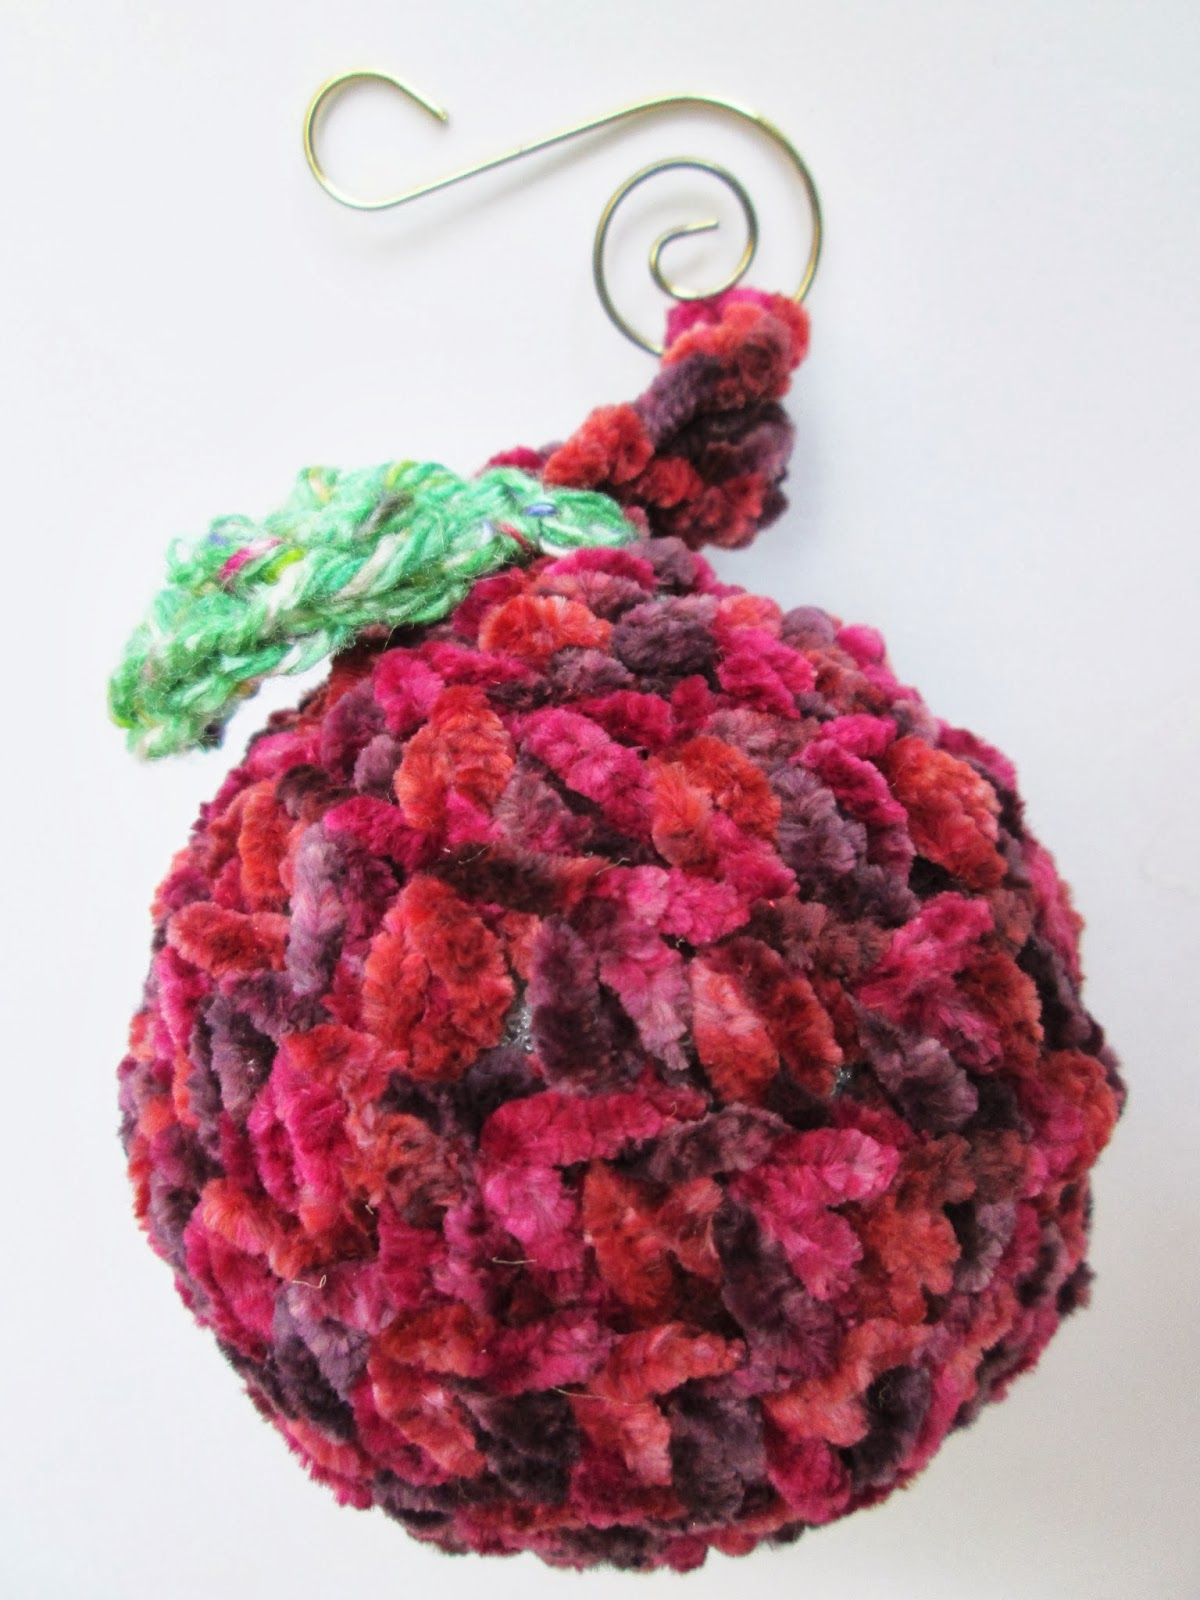 A Crochet Apple Christmas Tree Ornament Made with Chenille Yarn